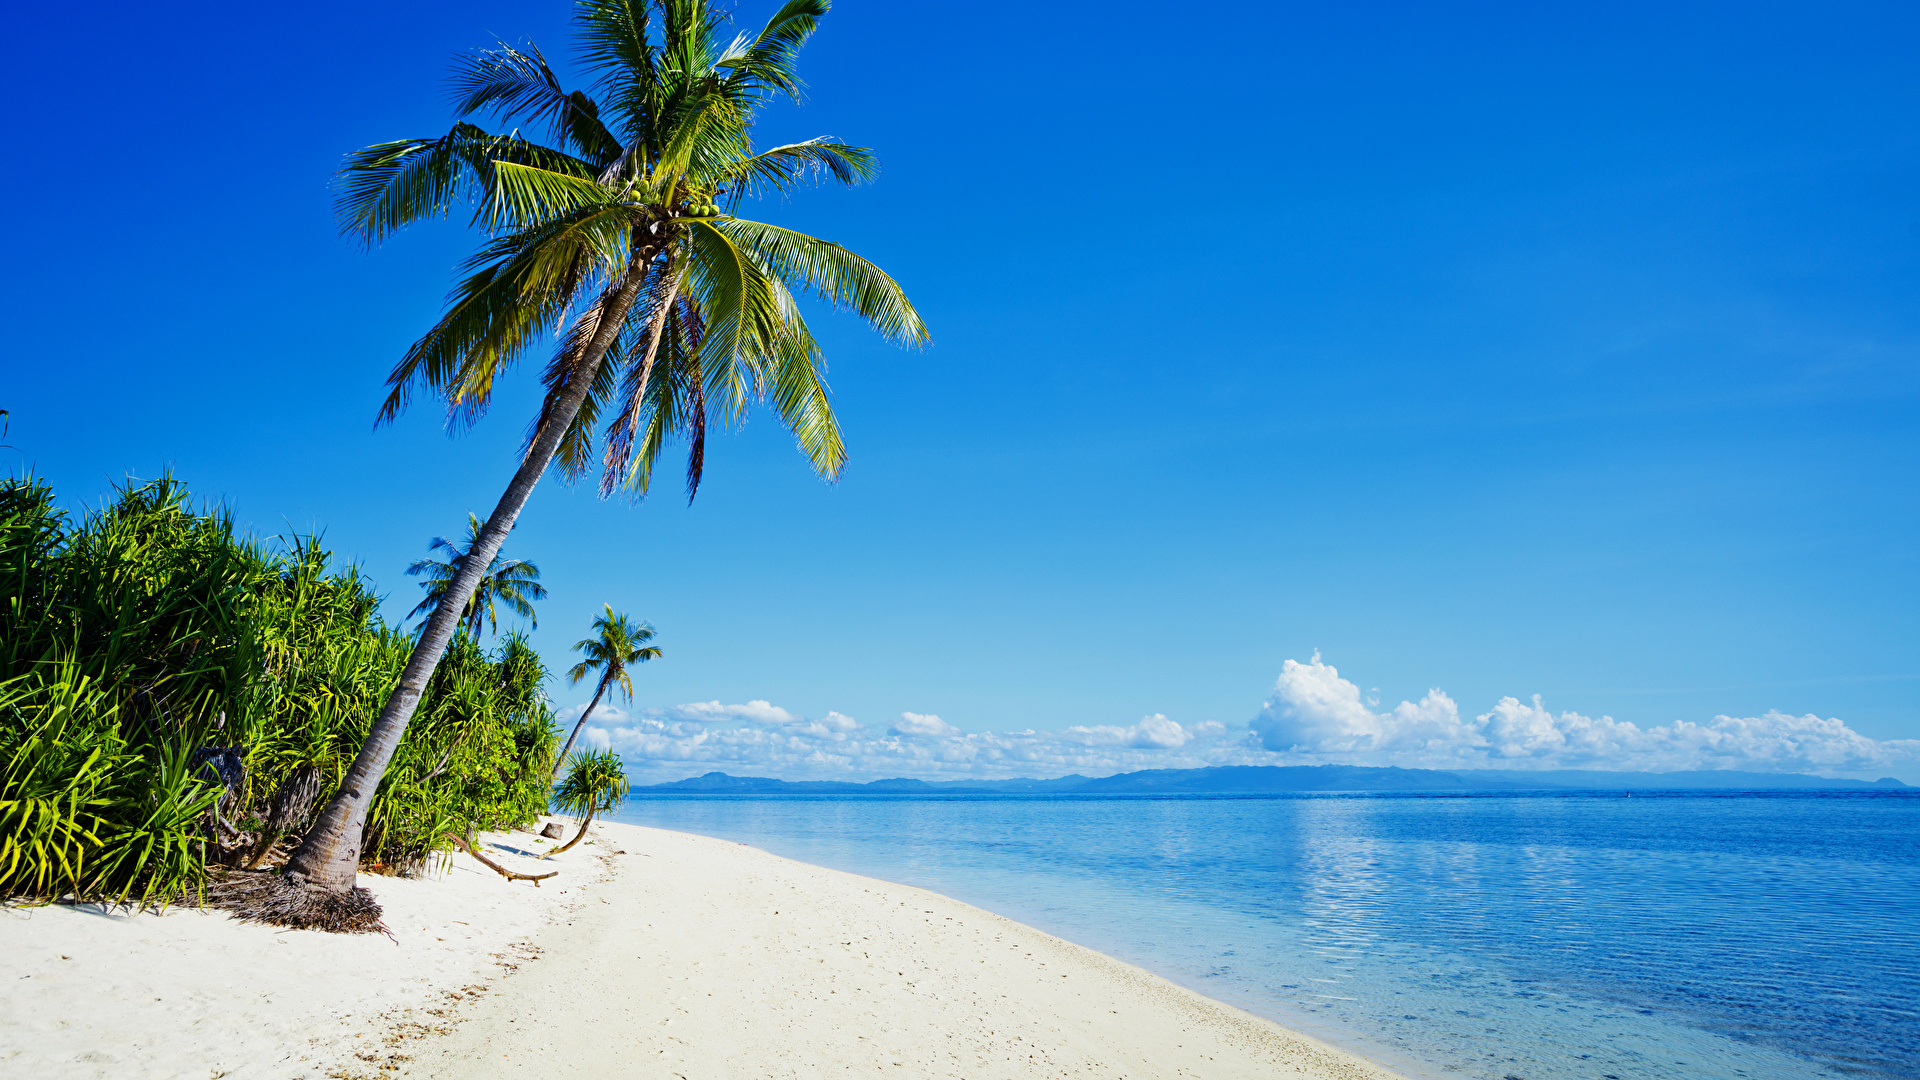 Tropical Beaches With Palm Trees S Wallpaper Desktop Background Is Cool Wallpapers